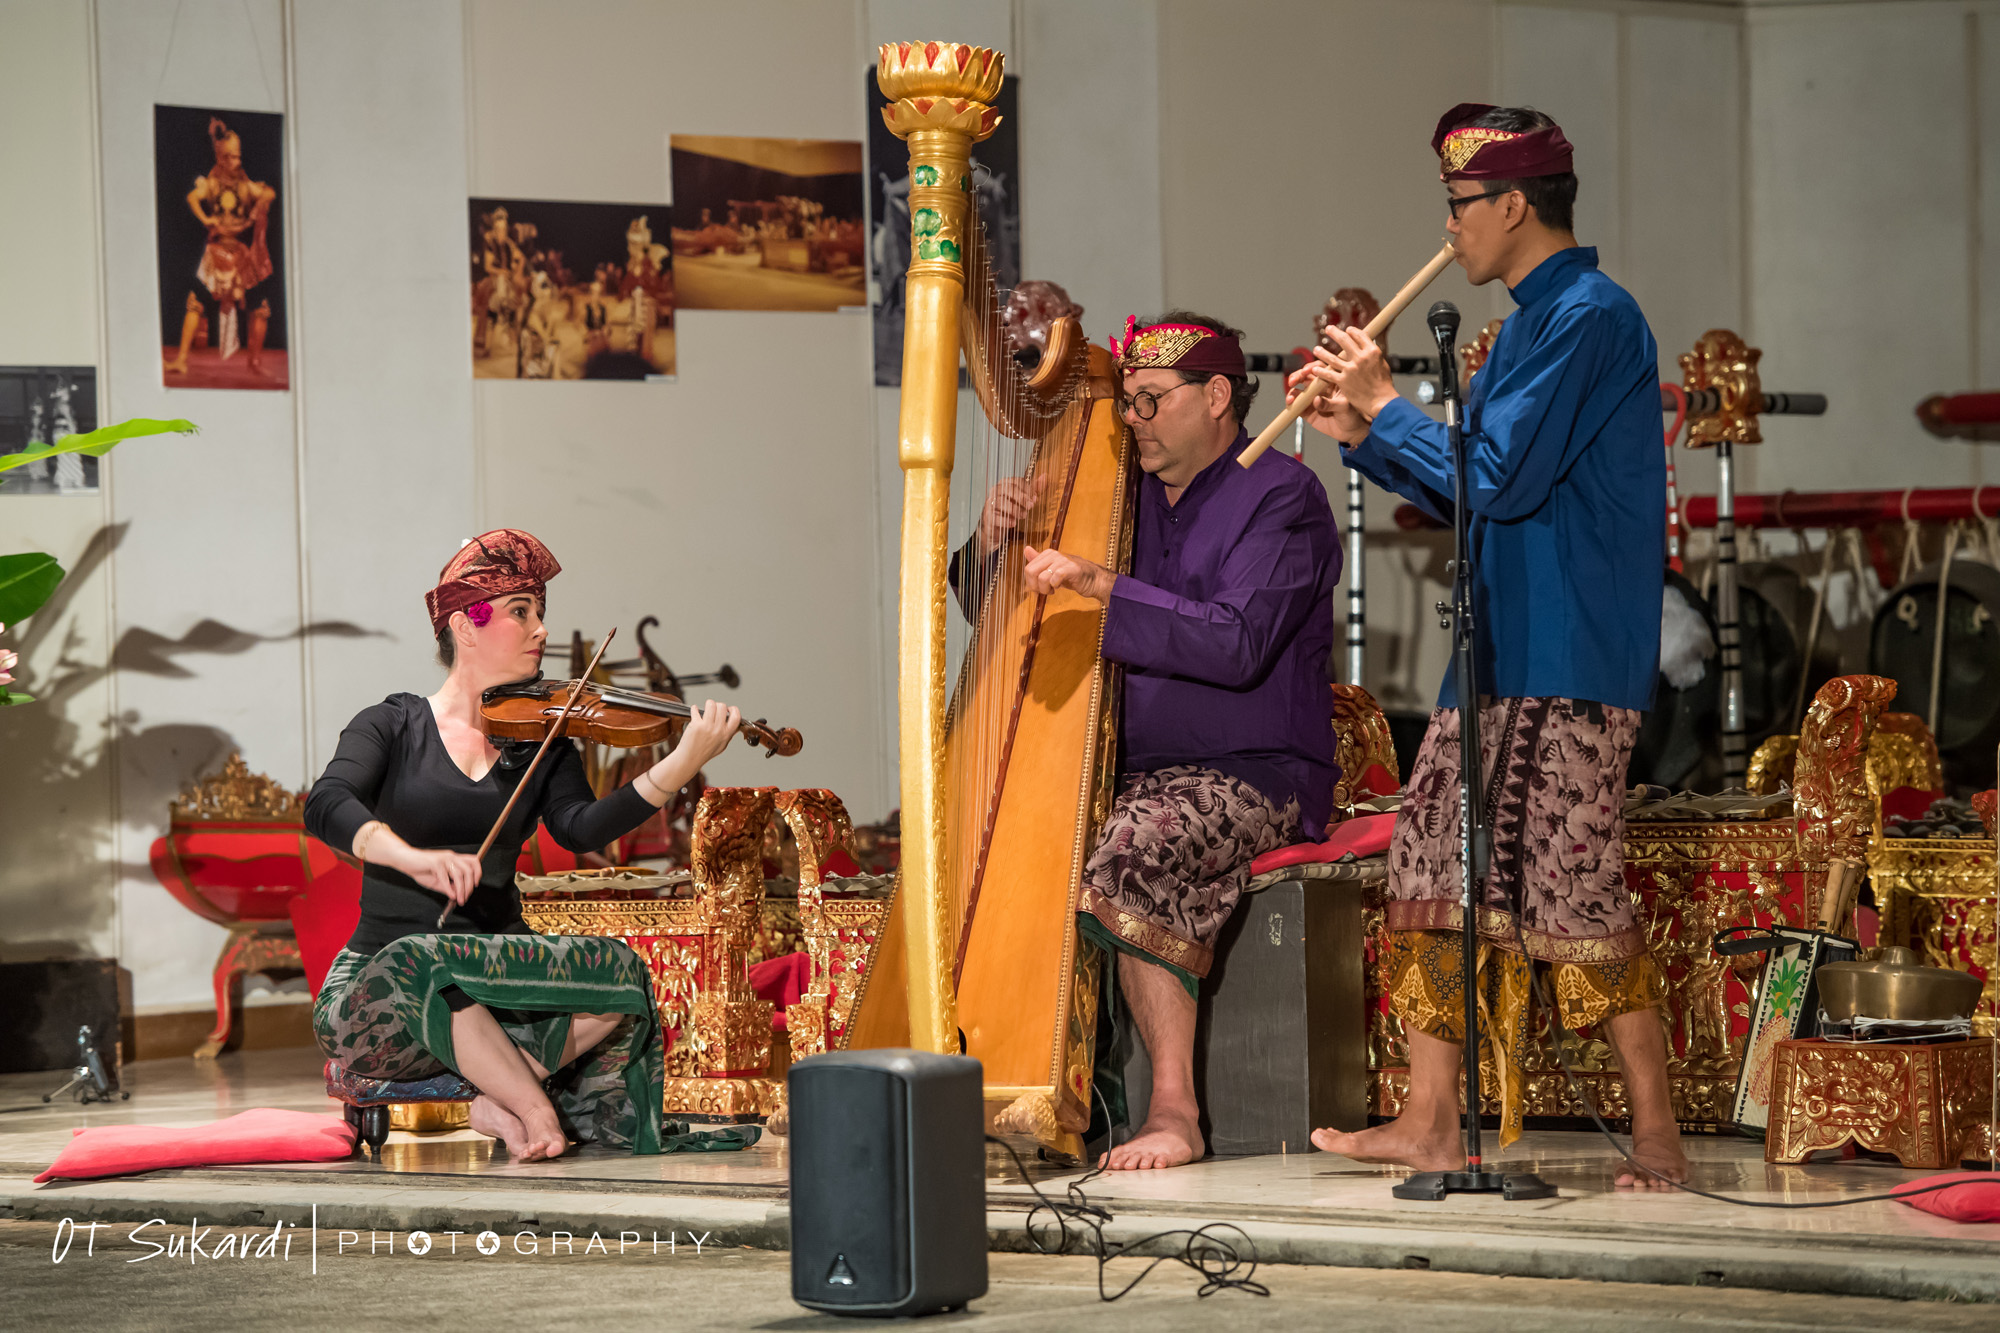 performers playing flute, harp, and violin